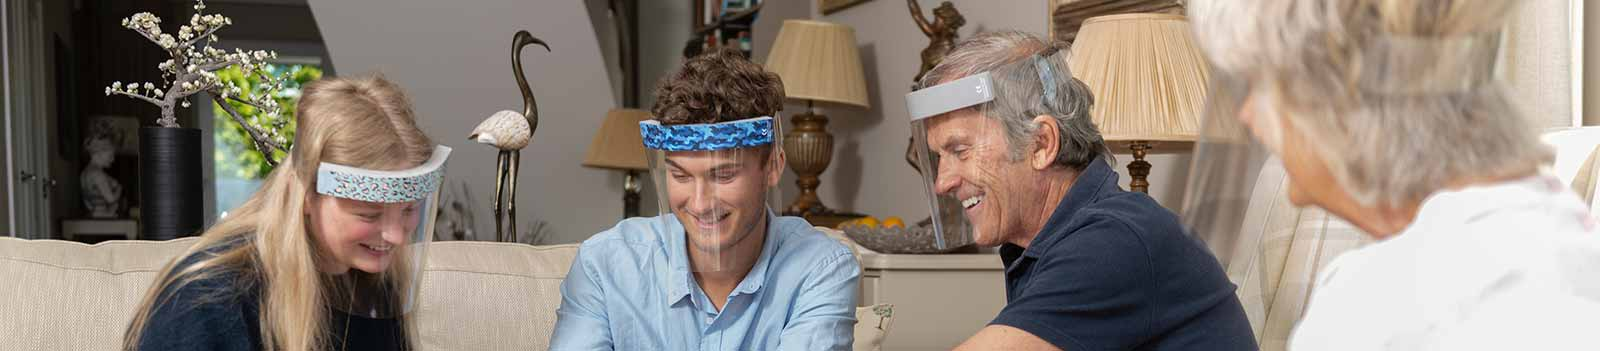 Family of four chatting in a living room wearing the Medworx face visors with a variety of patterned stickers.